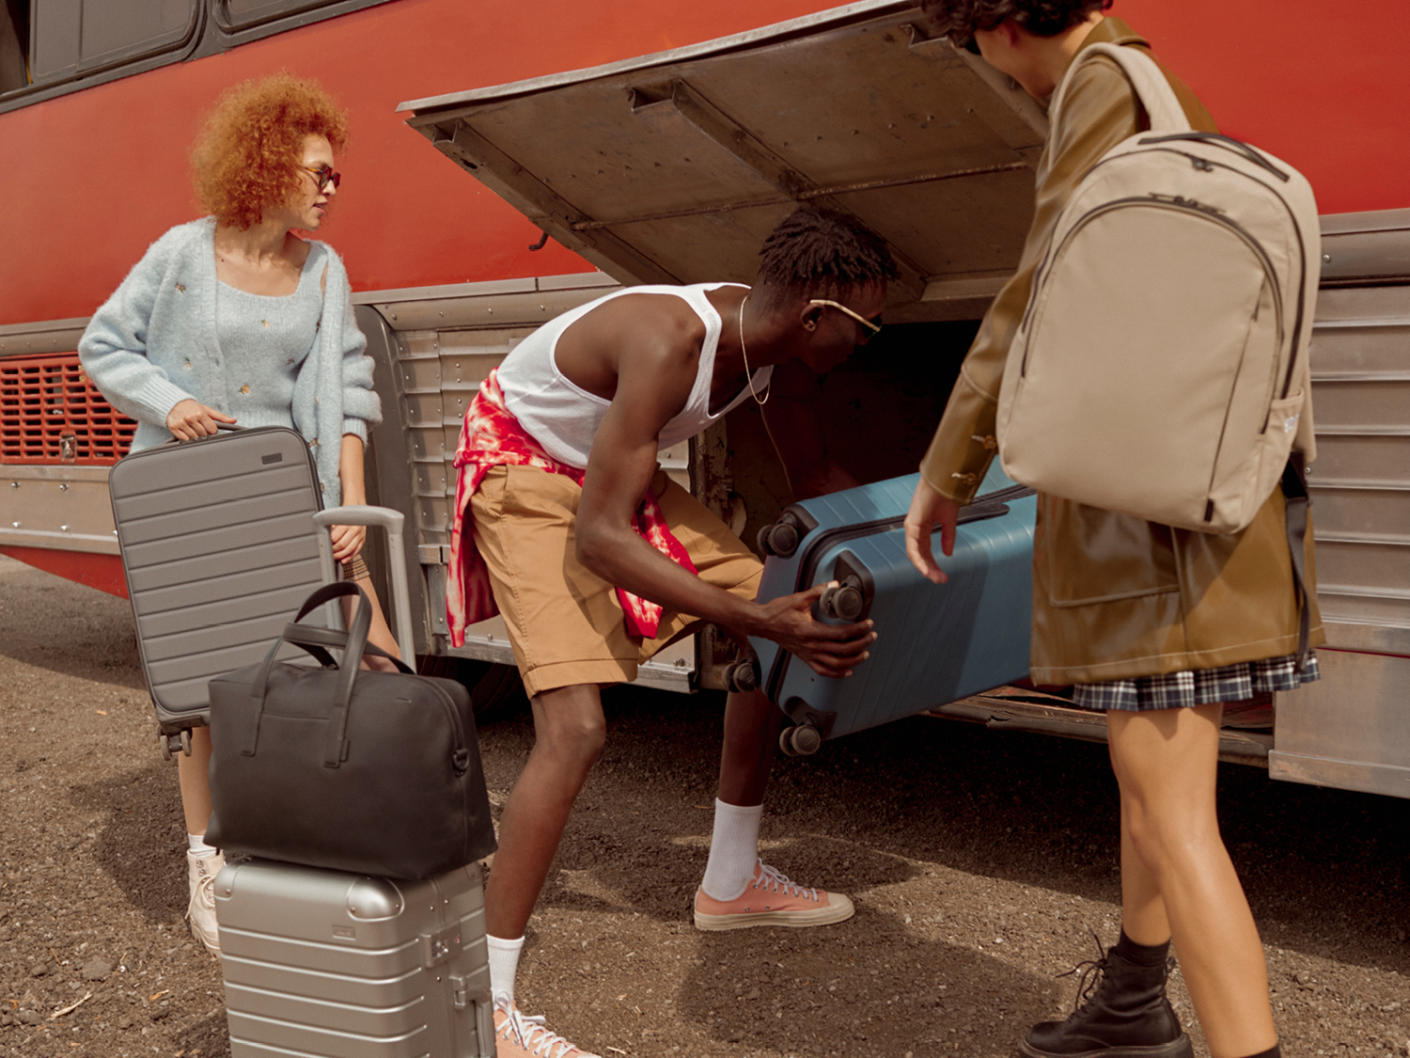 Suitcases being put into the luggage compartment of a bus by three travelers.